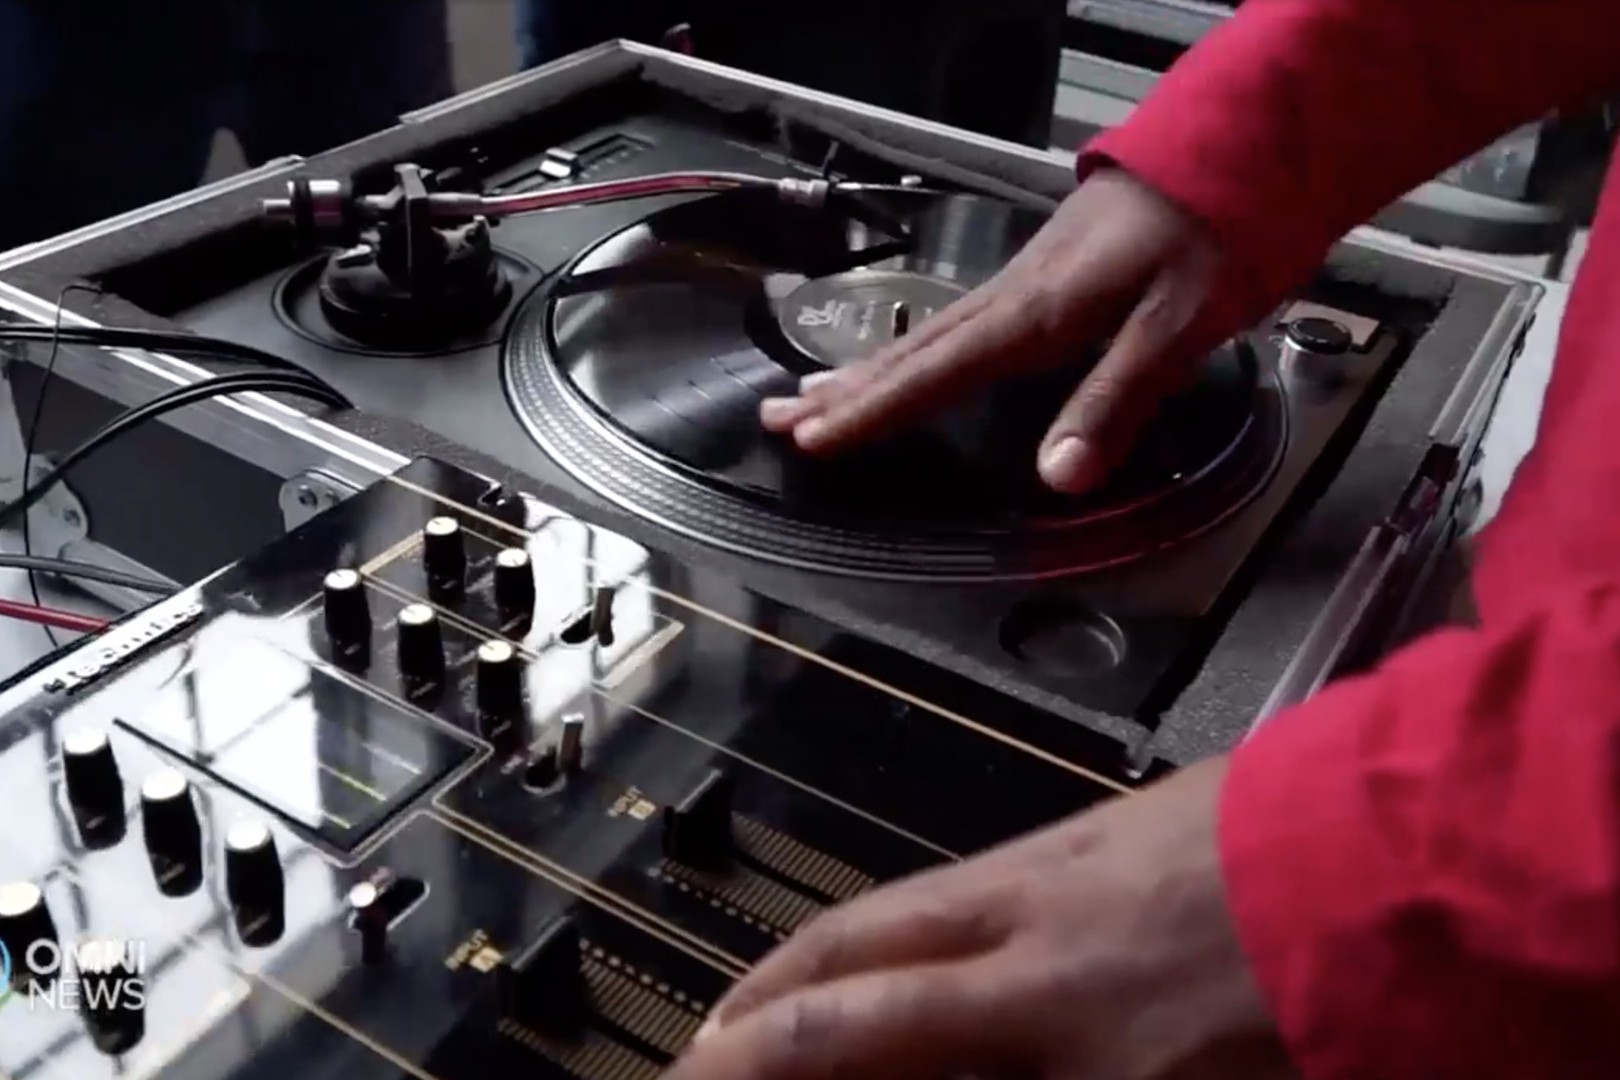 Image of a DJs hands on a turntable and mixer.